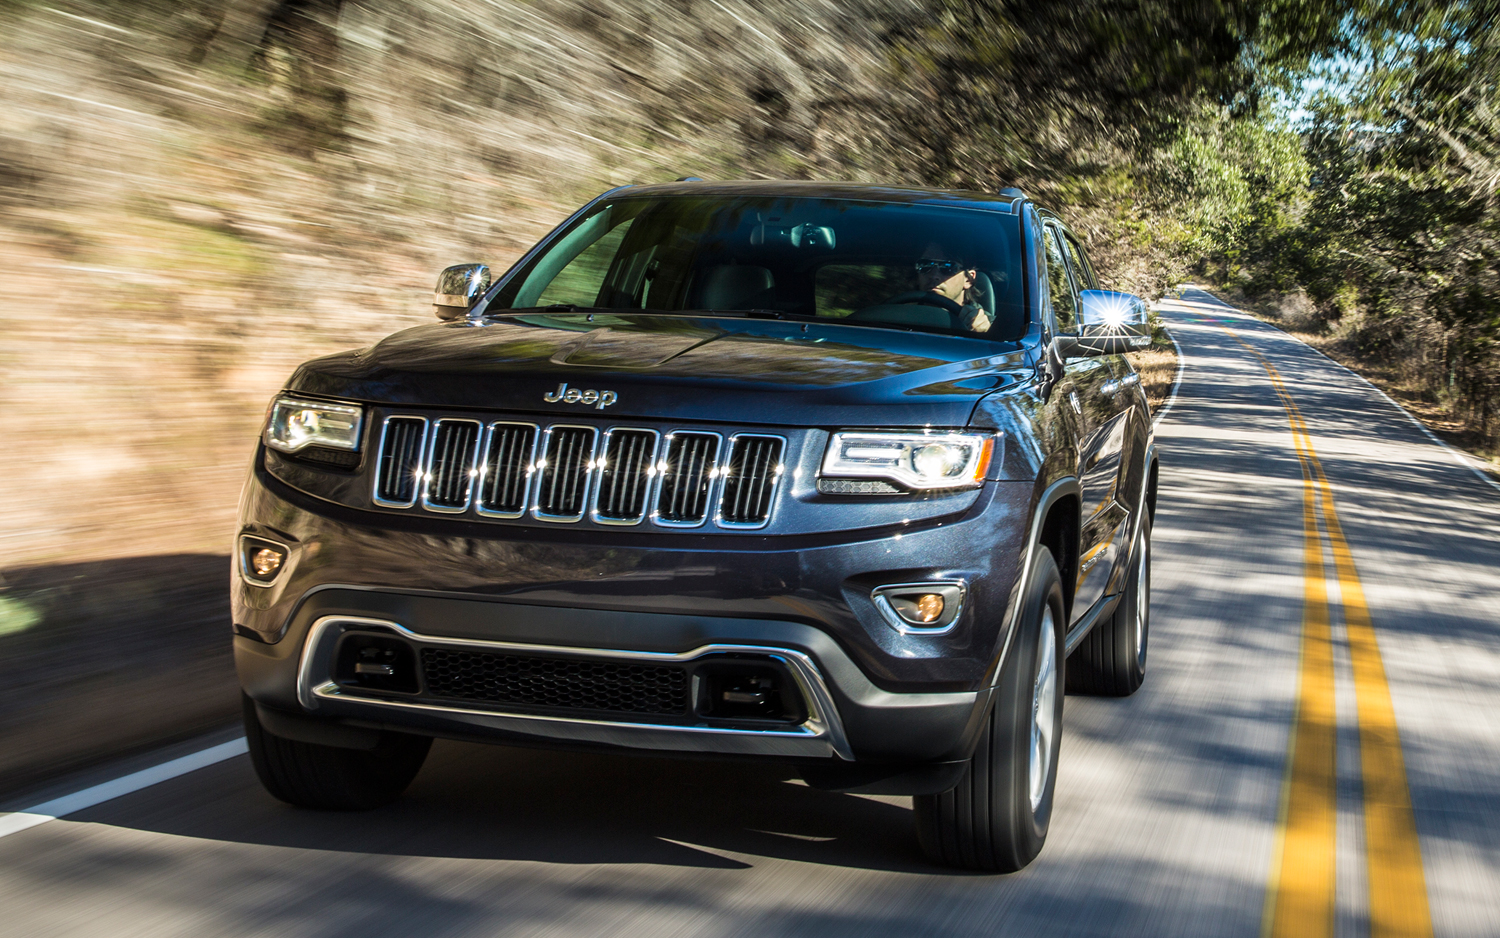 2014 Jeep Grand Cherokee EcoDiesel First Drive